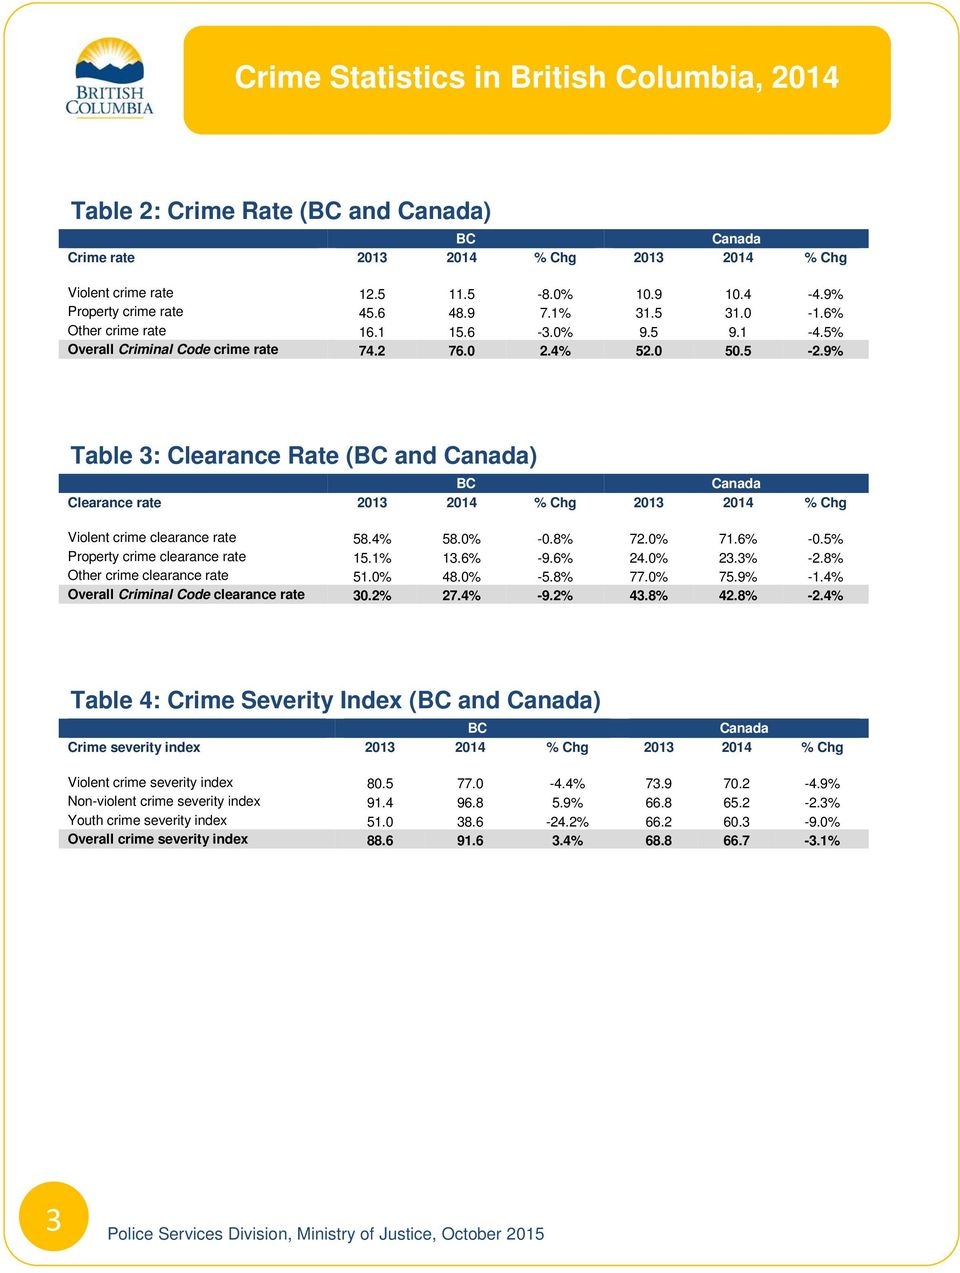 9% Table 3: Clearance Rate (BC and Canada) BC Canada Clearance rate 2013 2014 % Chg 2013 2014 % Chg Violent crime clearance rate 58.4% 58.0% -0.8% 72.0% 71.6% -0.5% Property crime clearance rate 15.